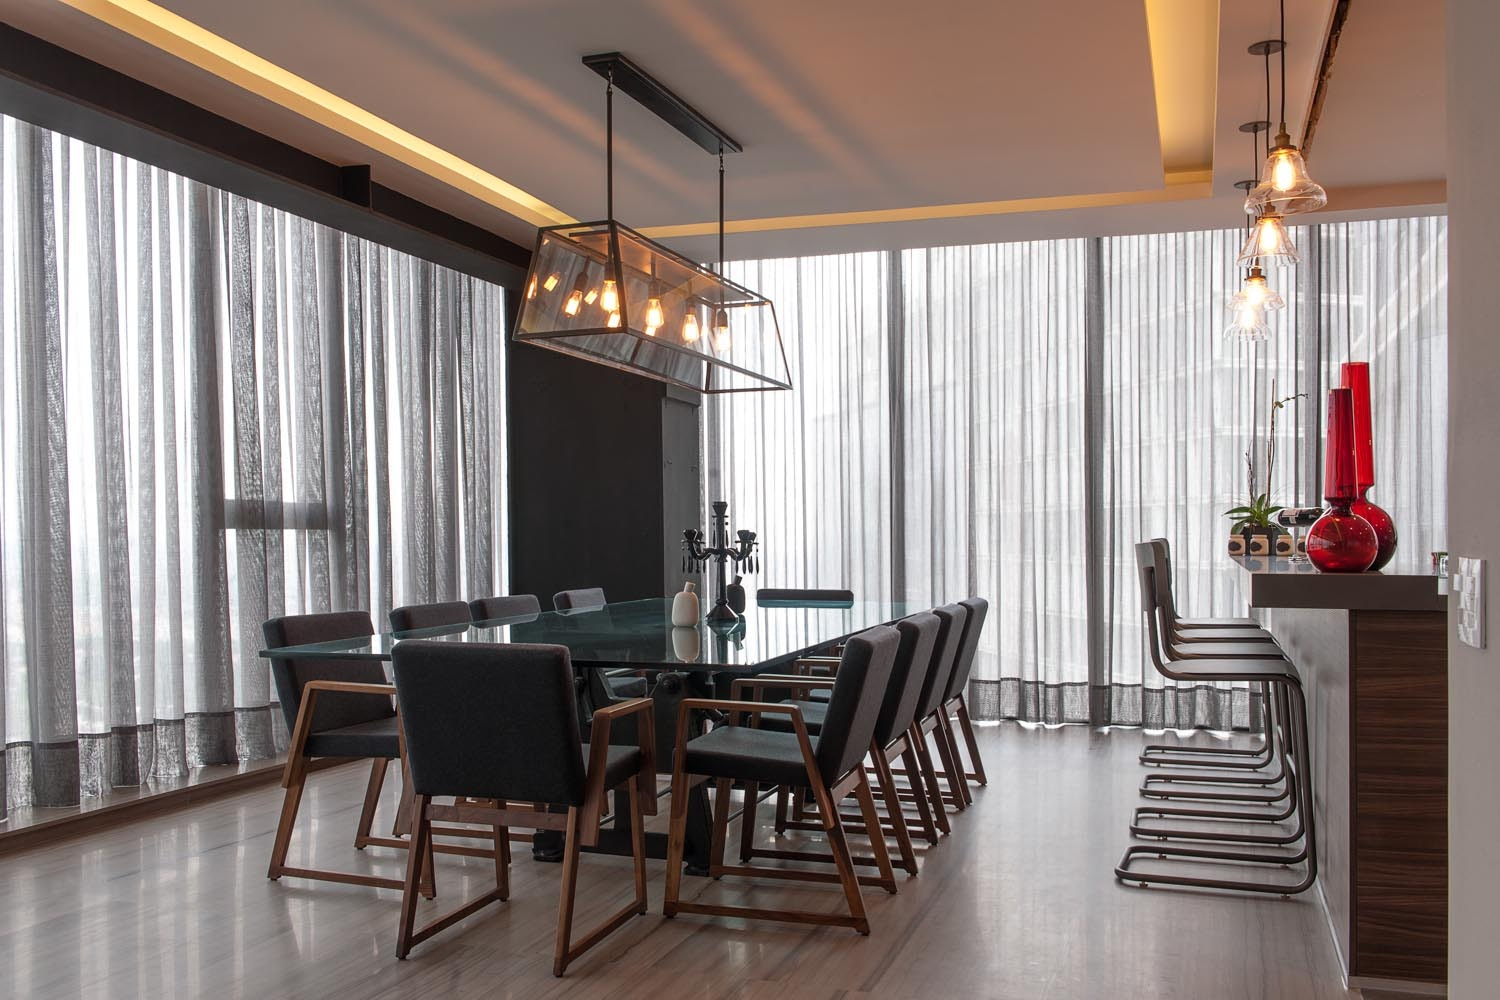 Cm Apartment In Mexico City By Kababie Arquitectos